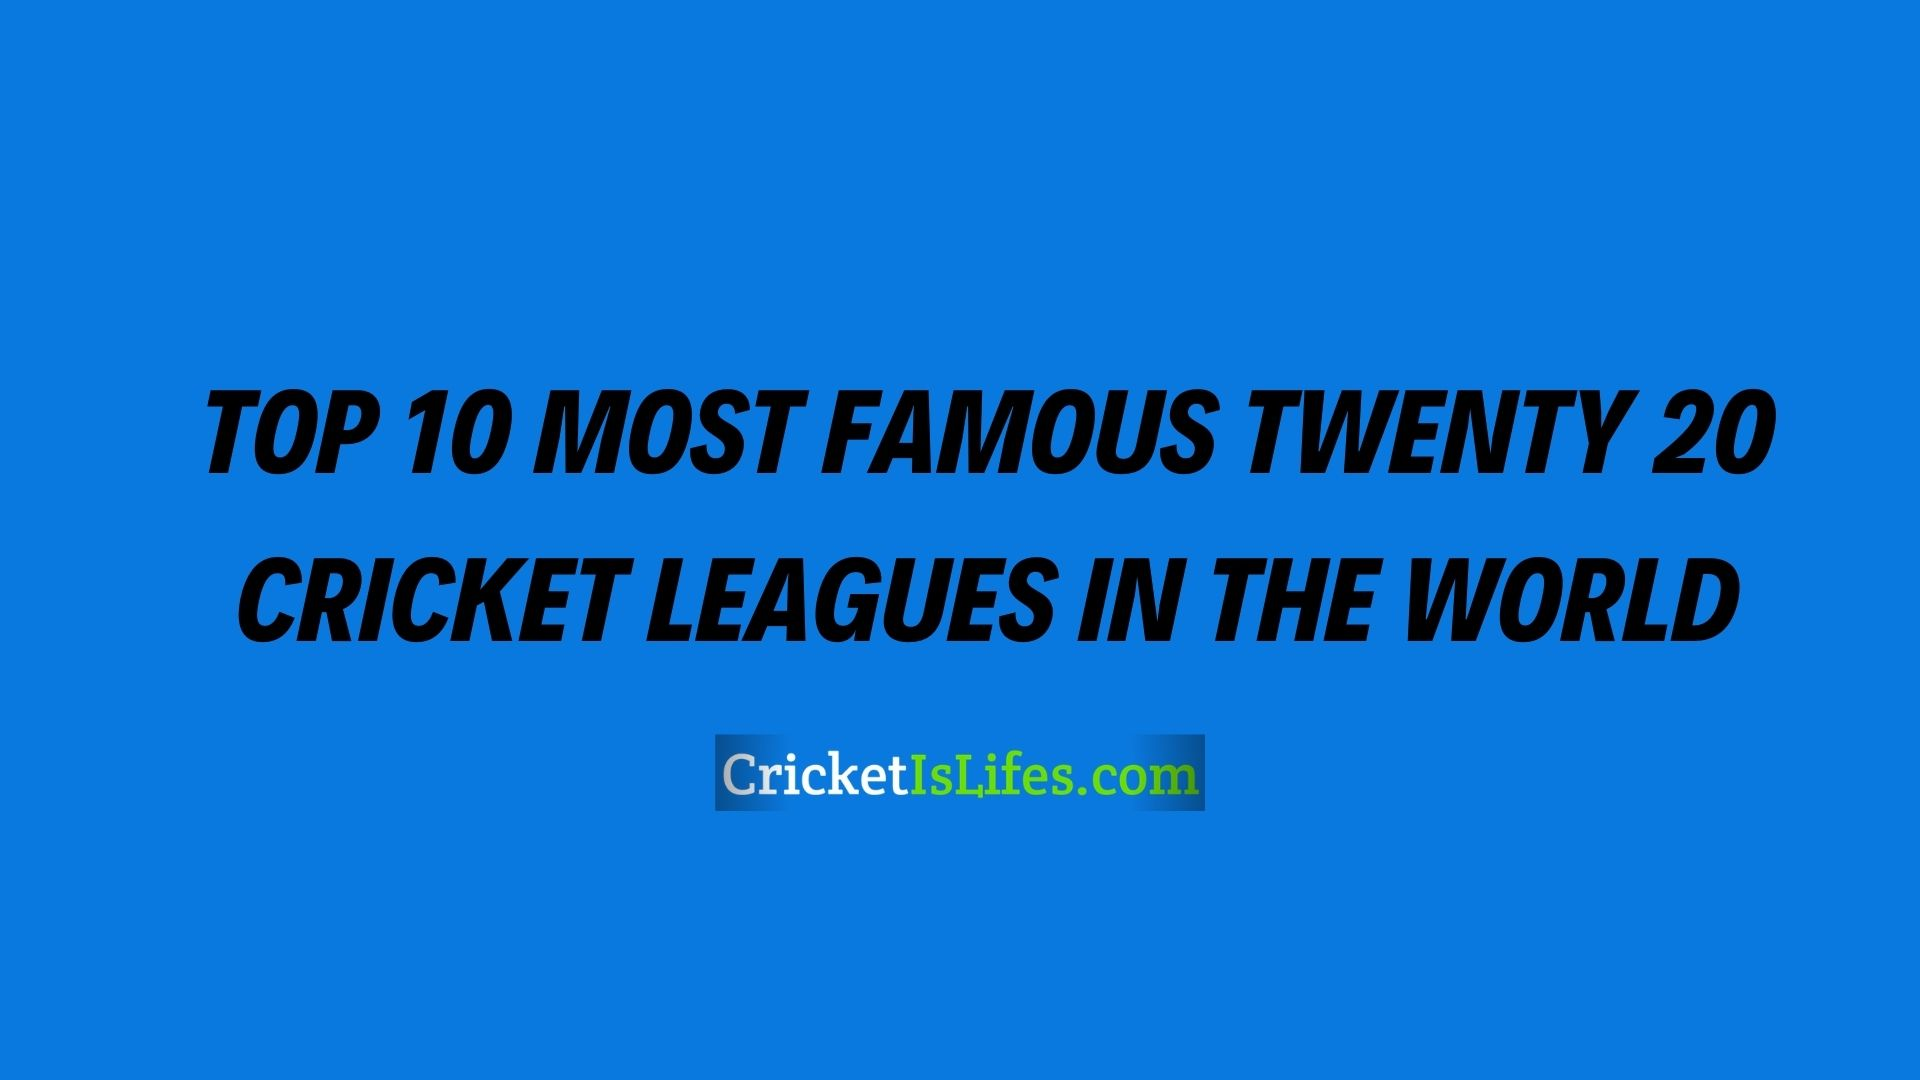 Ranking Top 10 Famous Domestic T20 Cricket Leagues in 2021